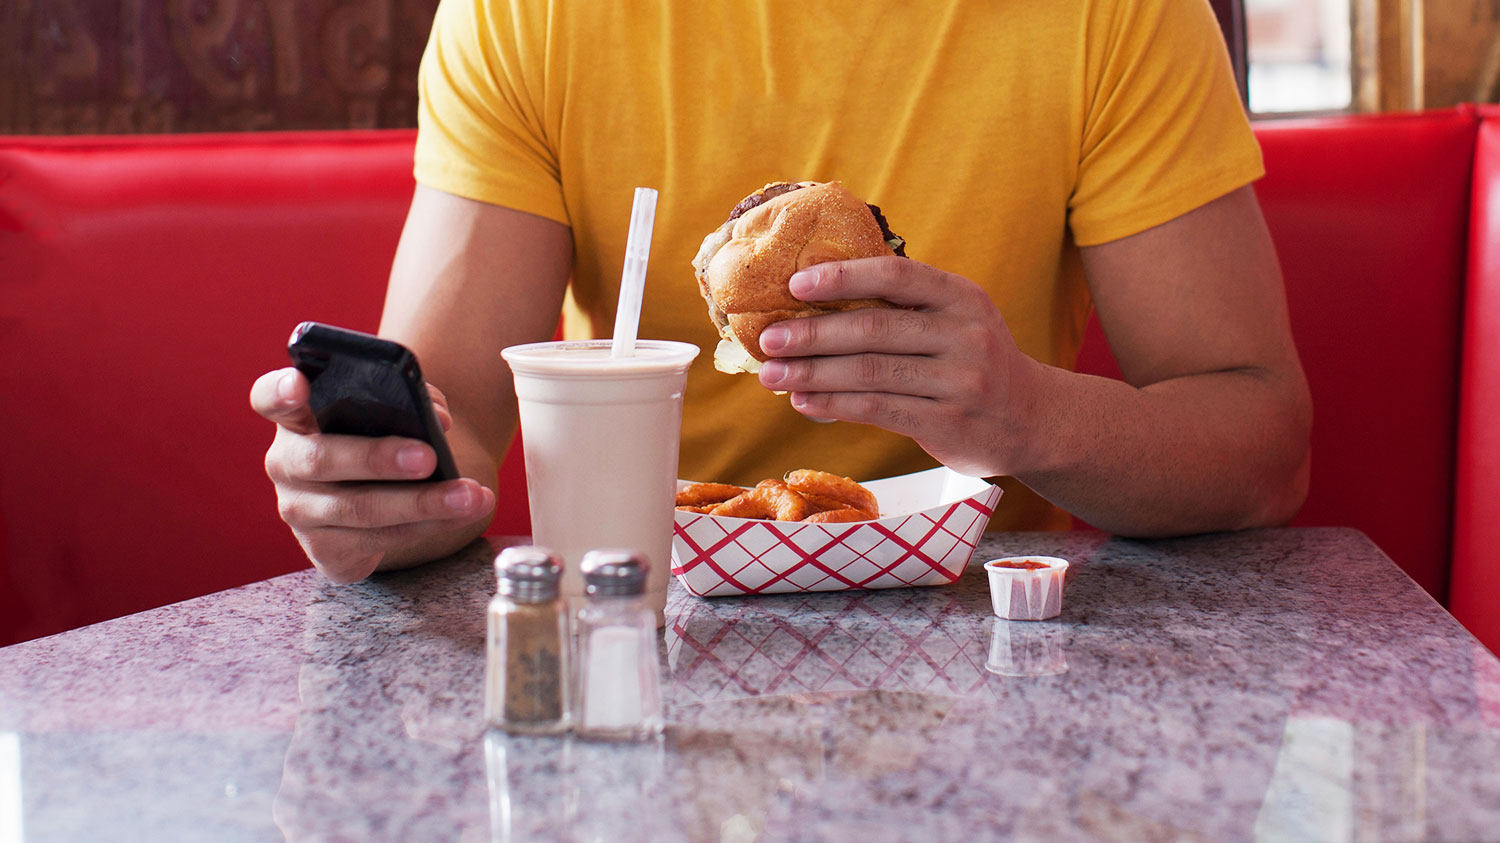 hackers target food chains